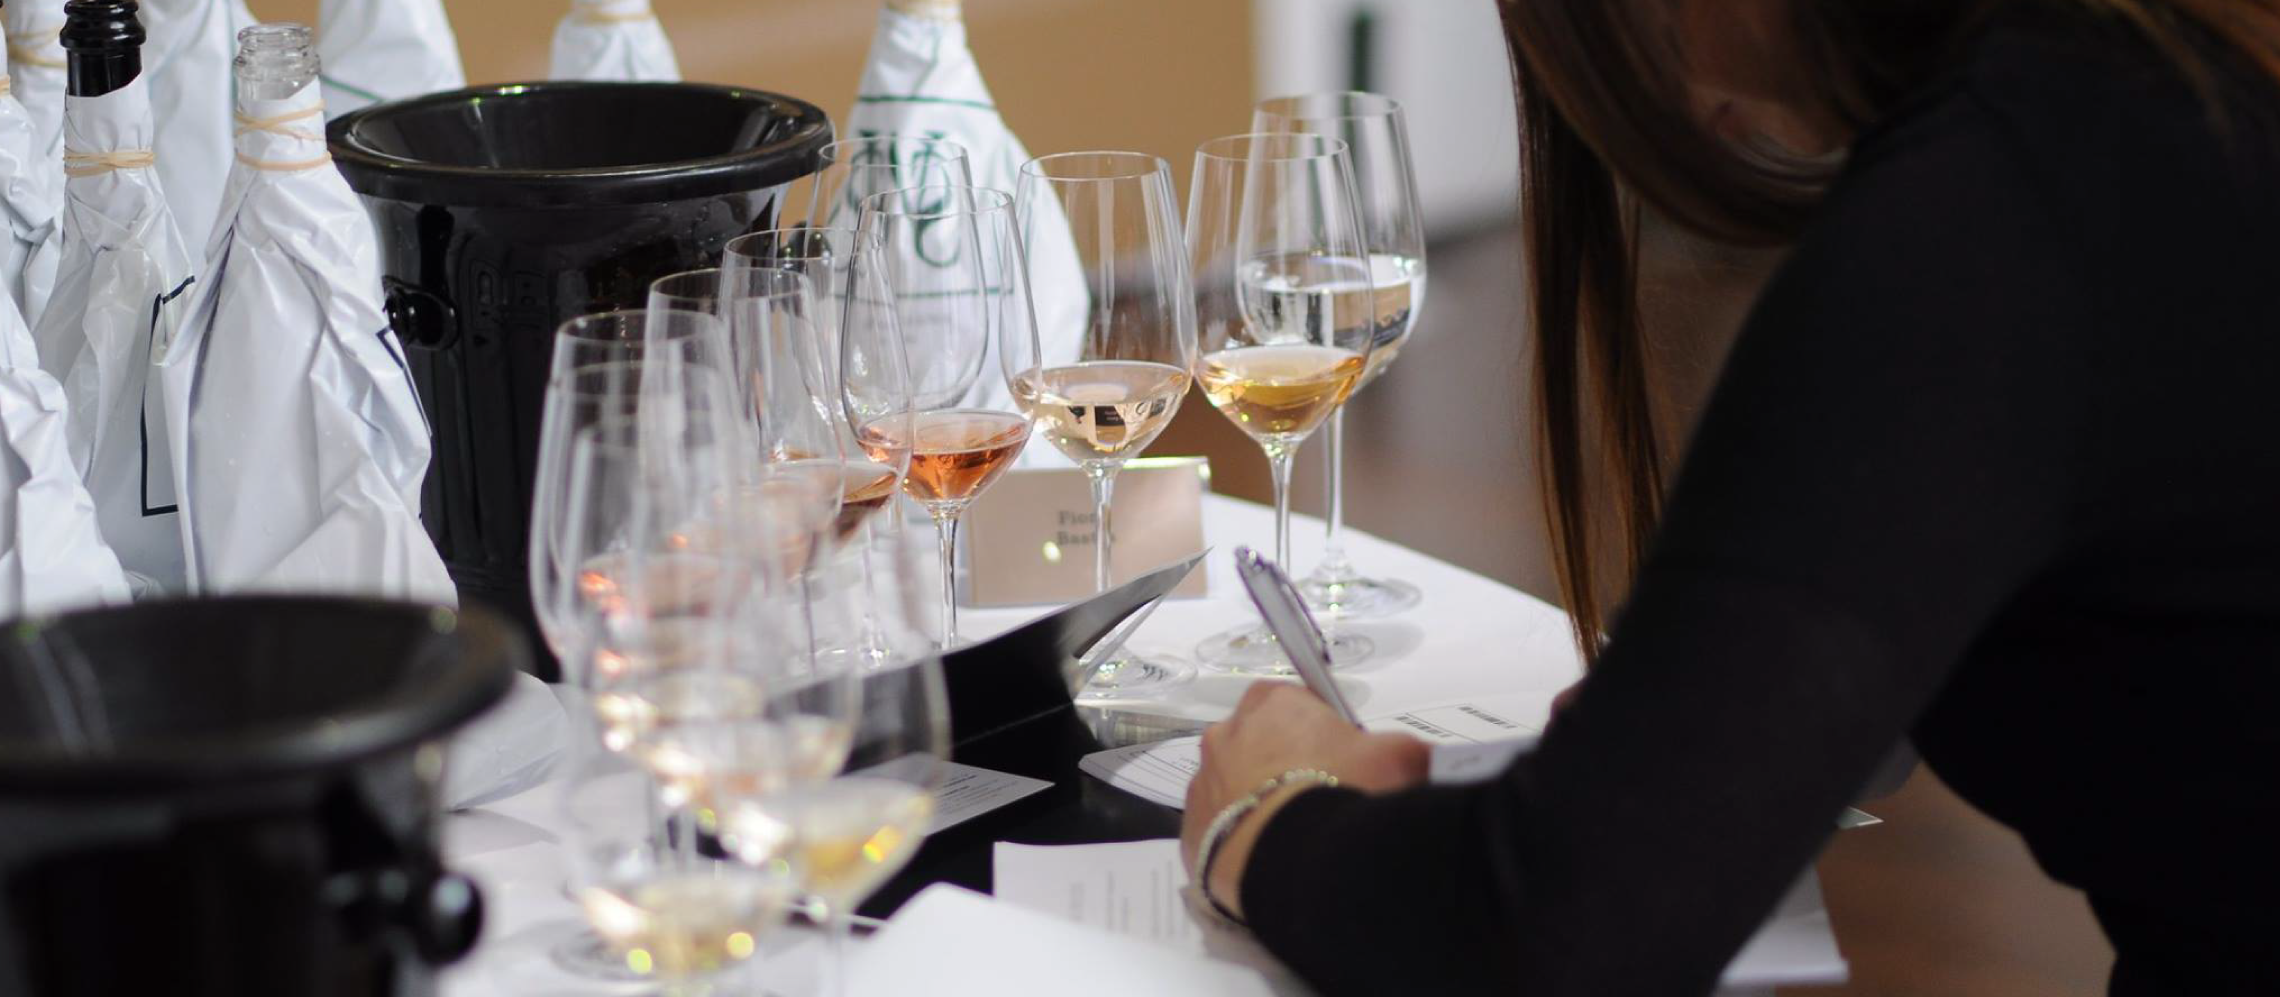 Photo for: Final Call To Enter Your Wines In The 2021 London Wine Competition